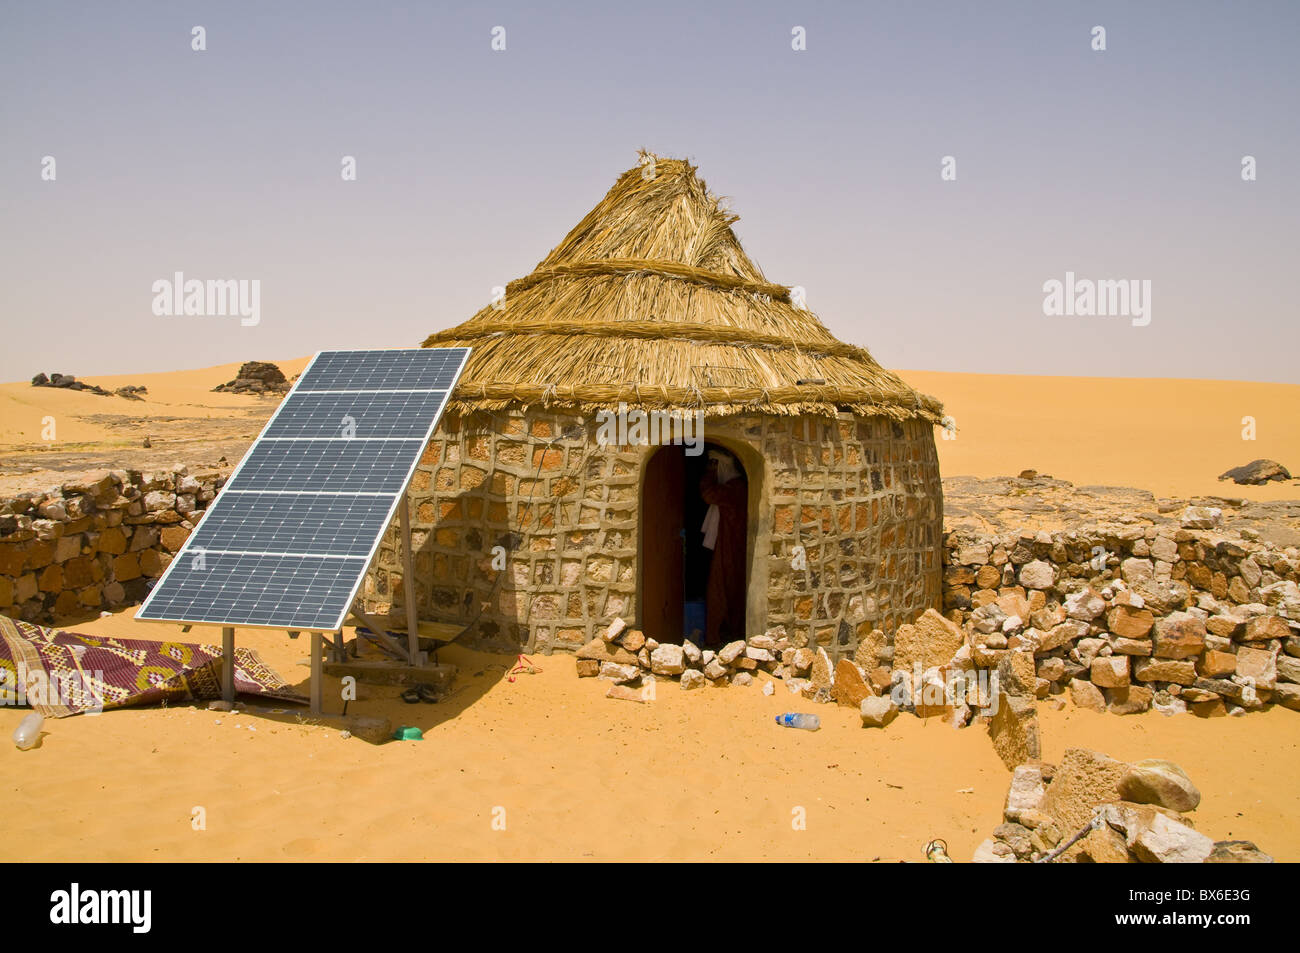 Traditional House With A Solar Panel In The Sahara Desert